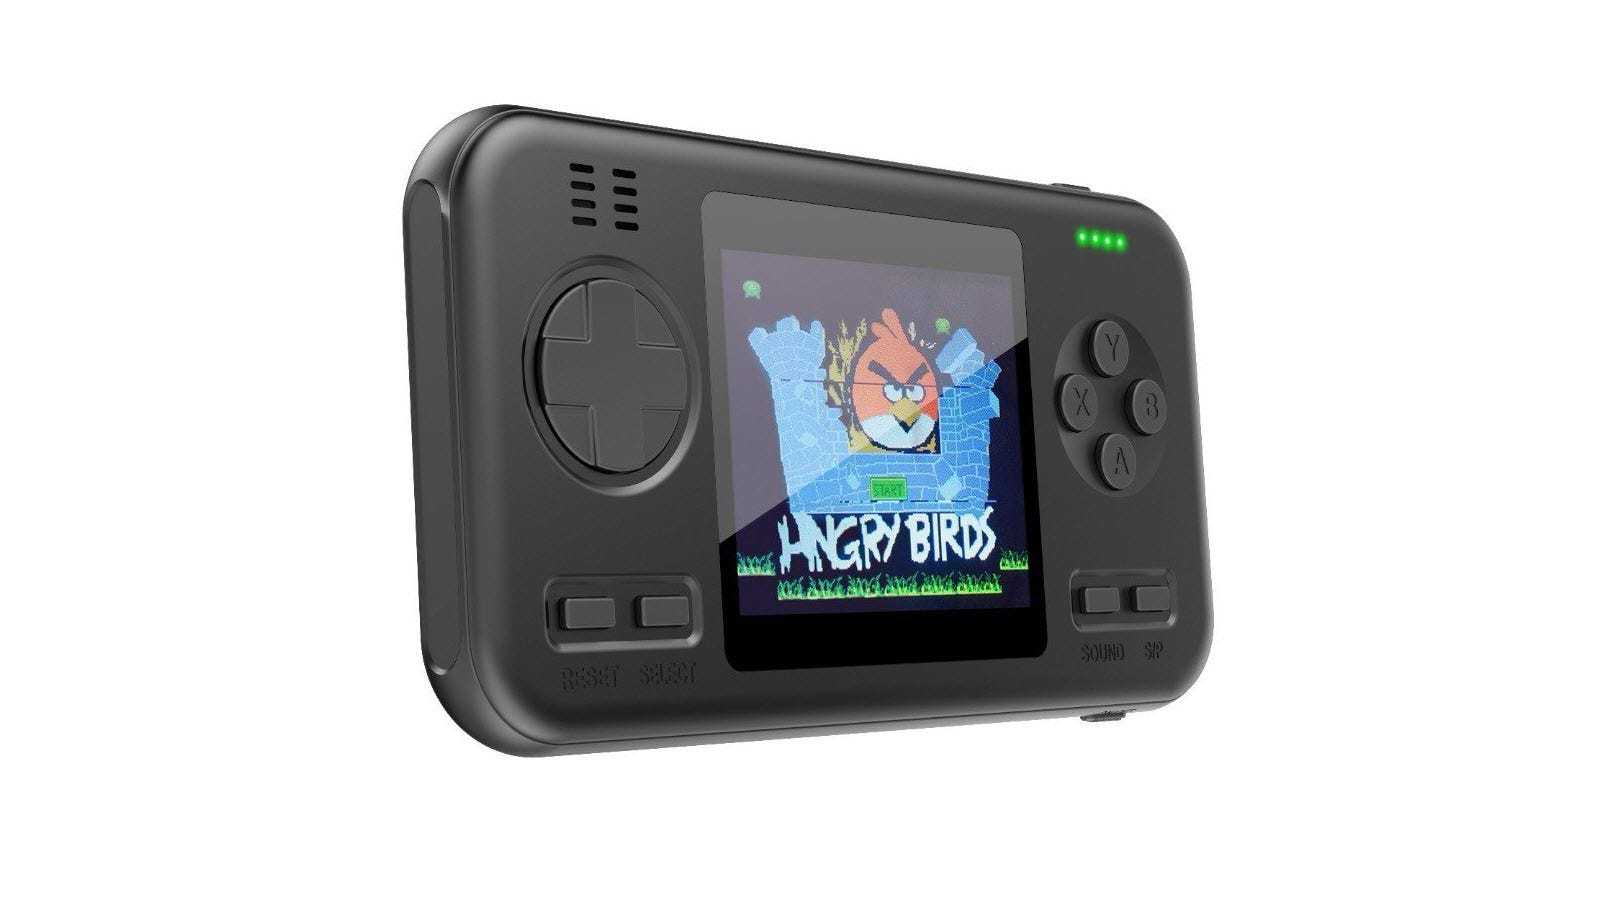 A black Gaming Power Bank with the Angry Birds splash screen.